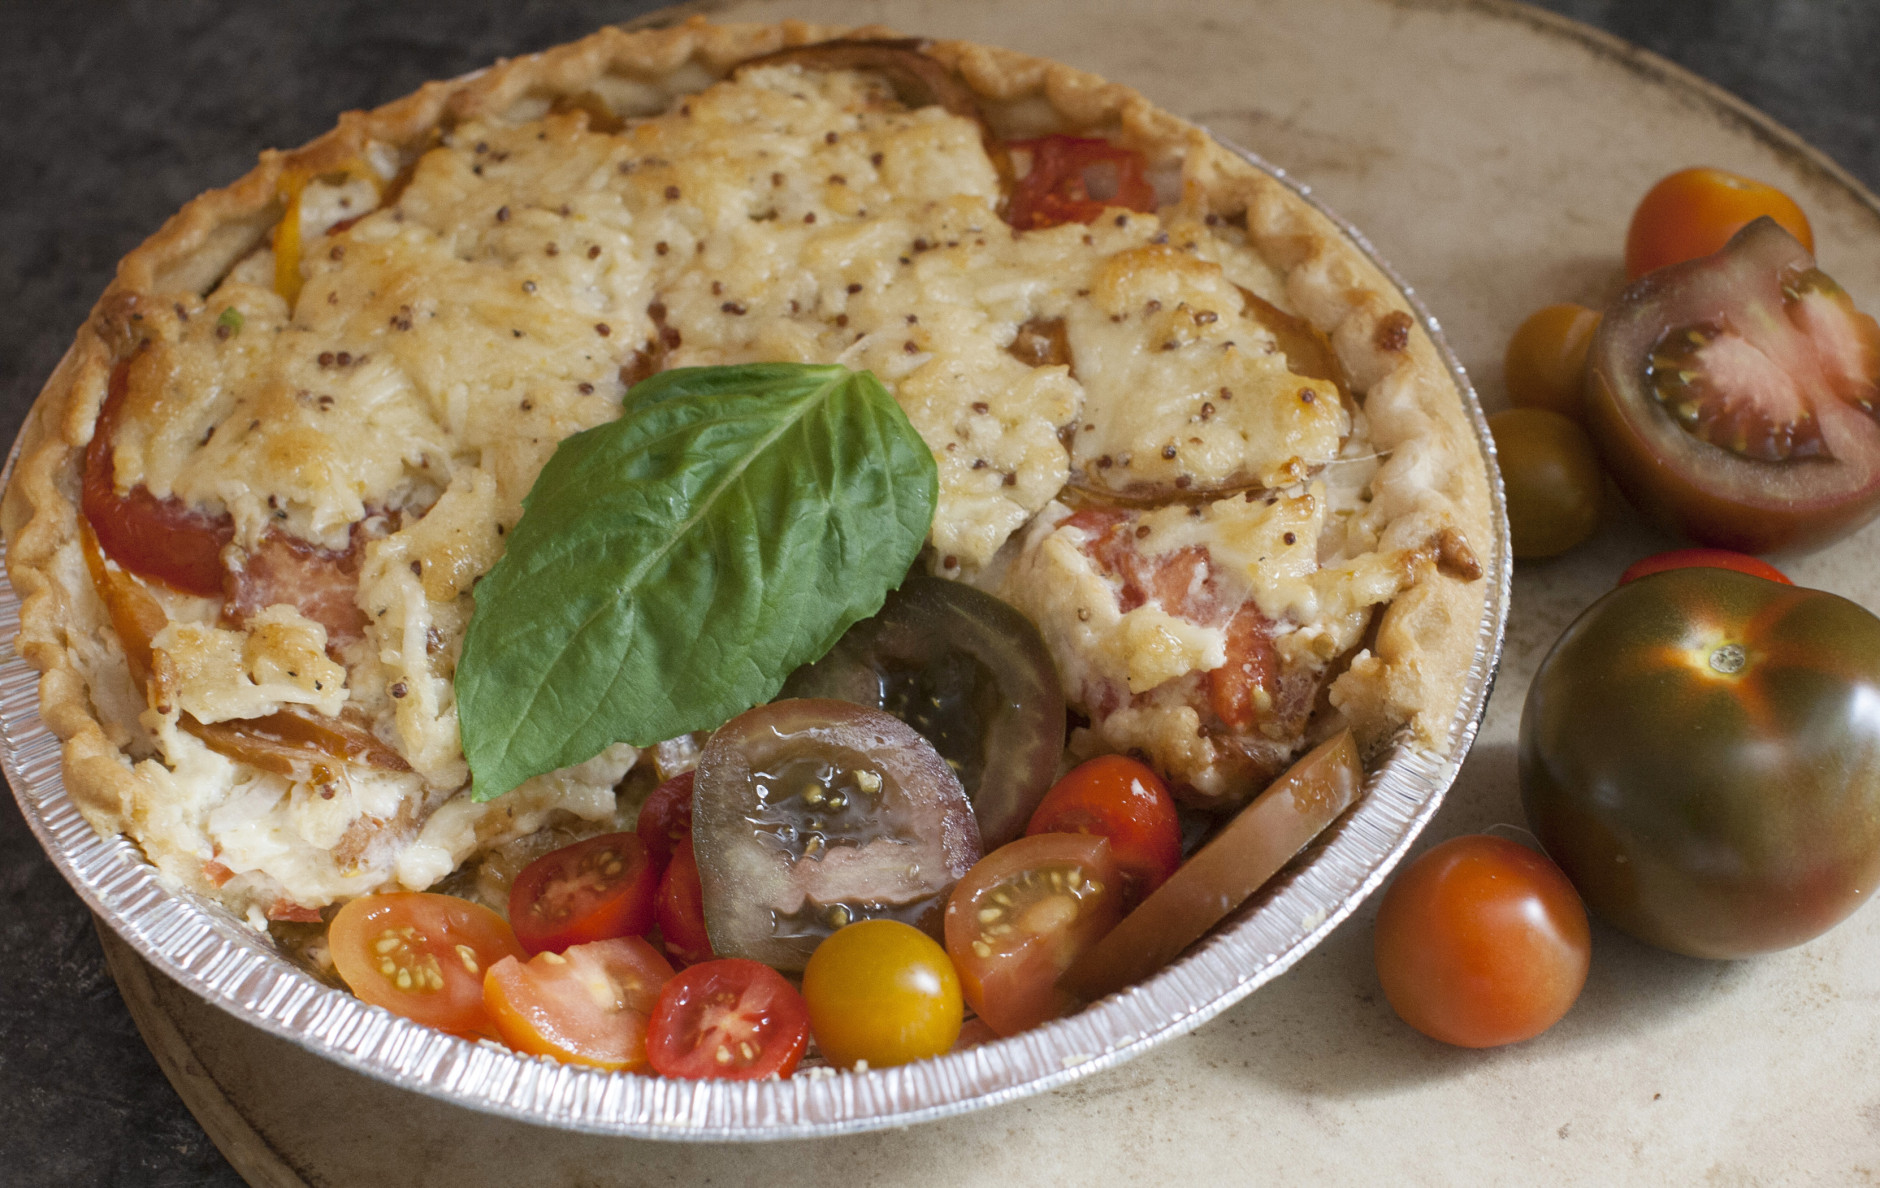 This June 9, 2014 photo shows Dijon tomato and sweet onion pie in Concord, N.H. The Tomato Pie is a classic Southern dish made in summer when the tomato plants are heavy with ripe fruit. (AP Photo/Matthew Mead)